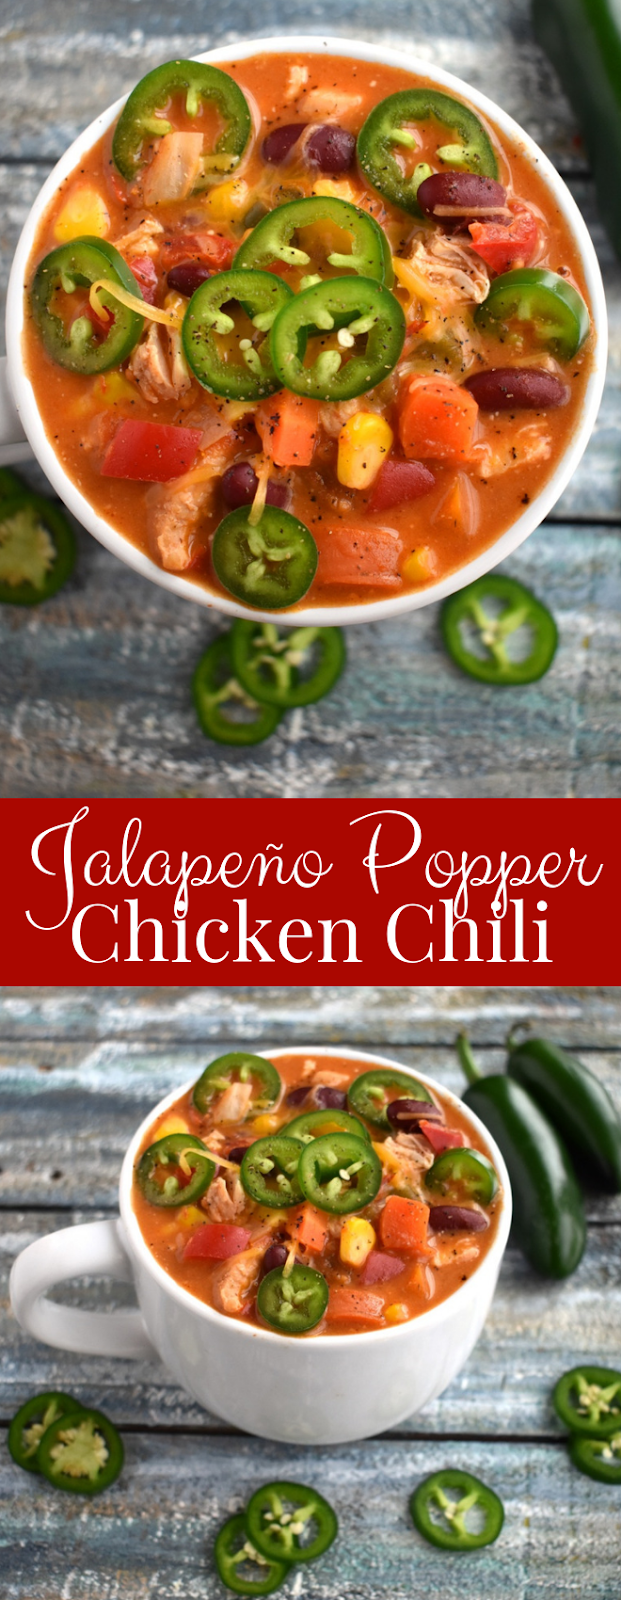 Photos of bowl of jalapeno popper chicken chili